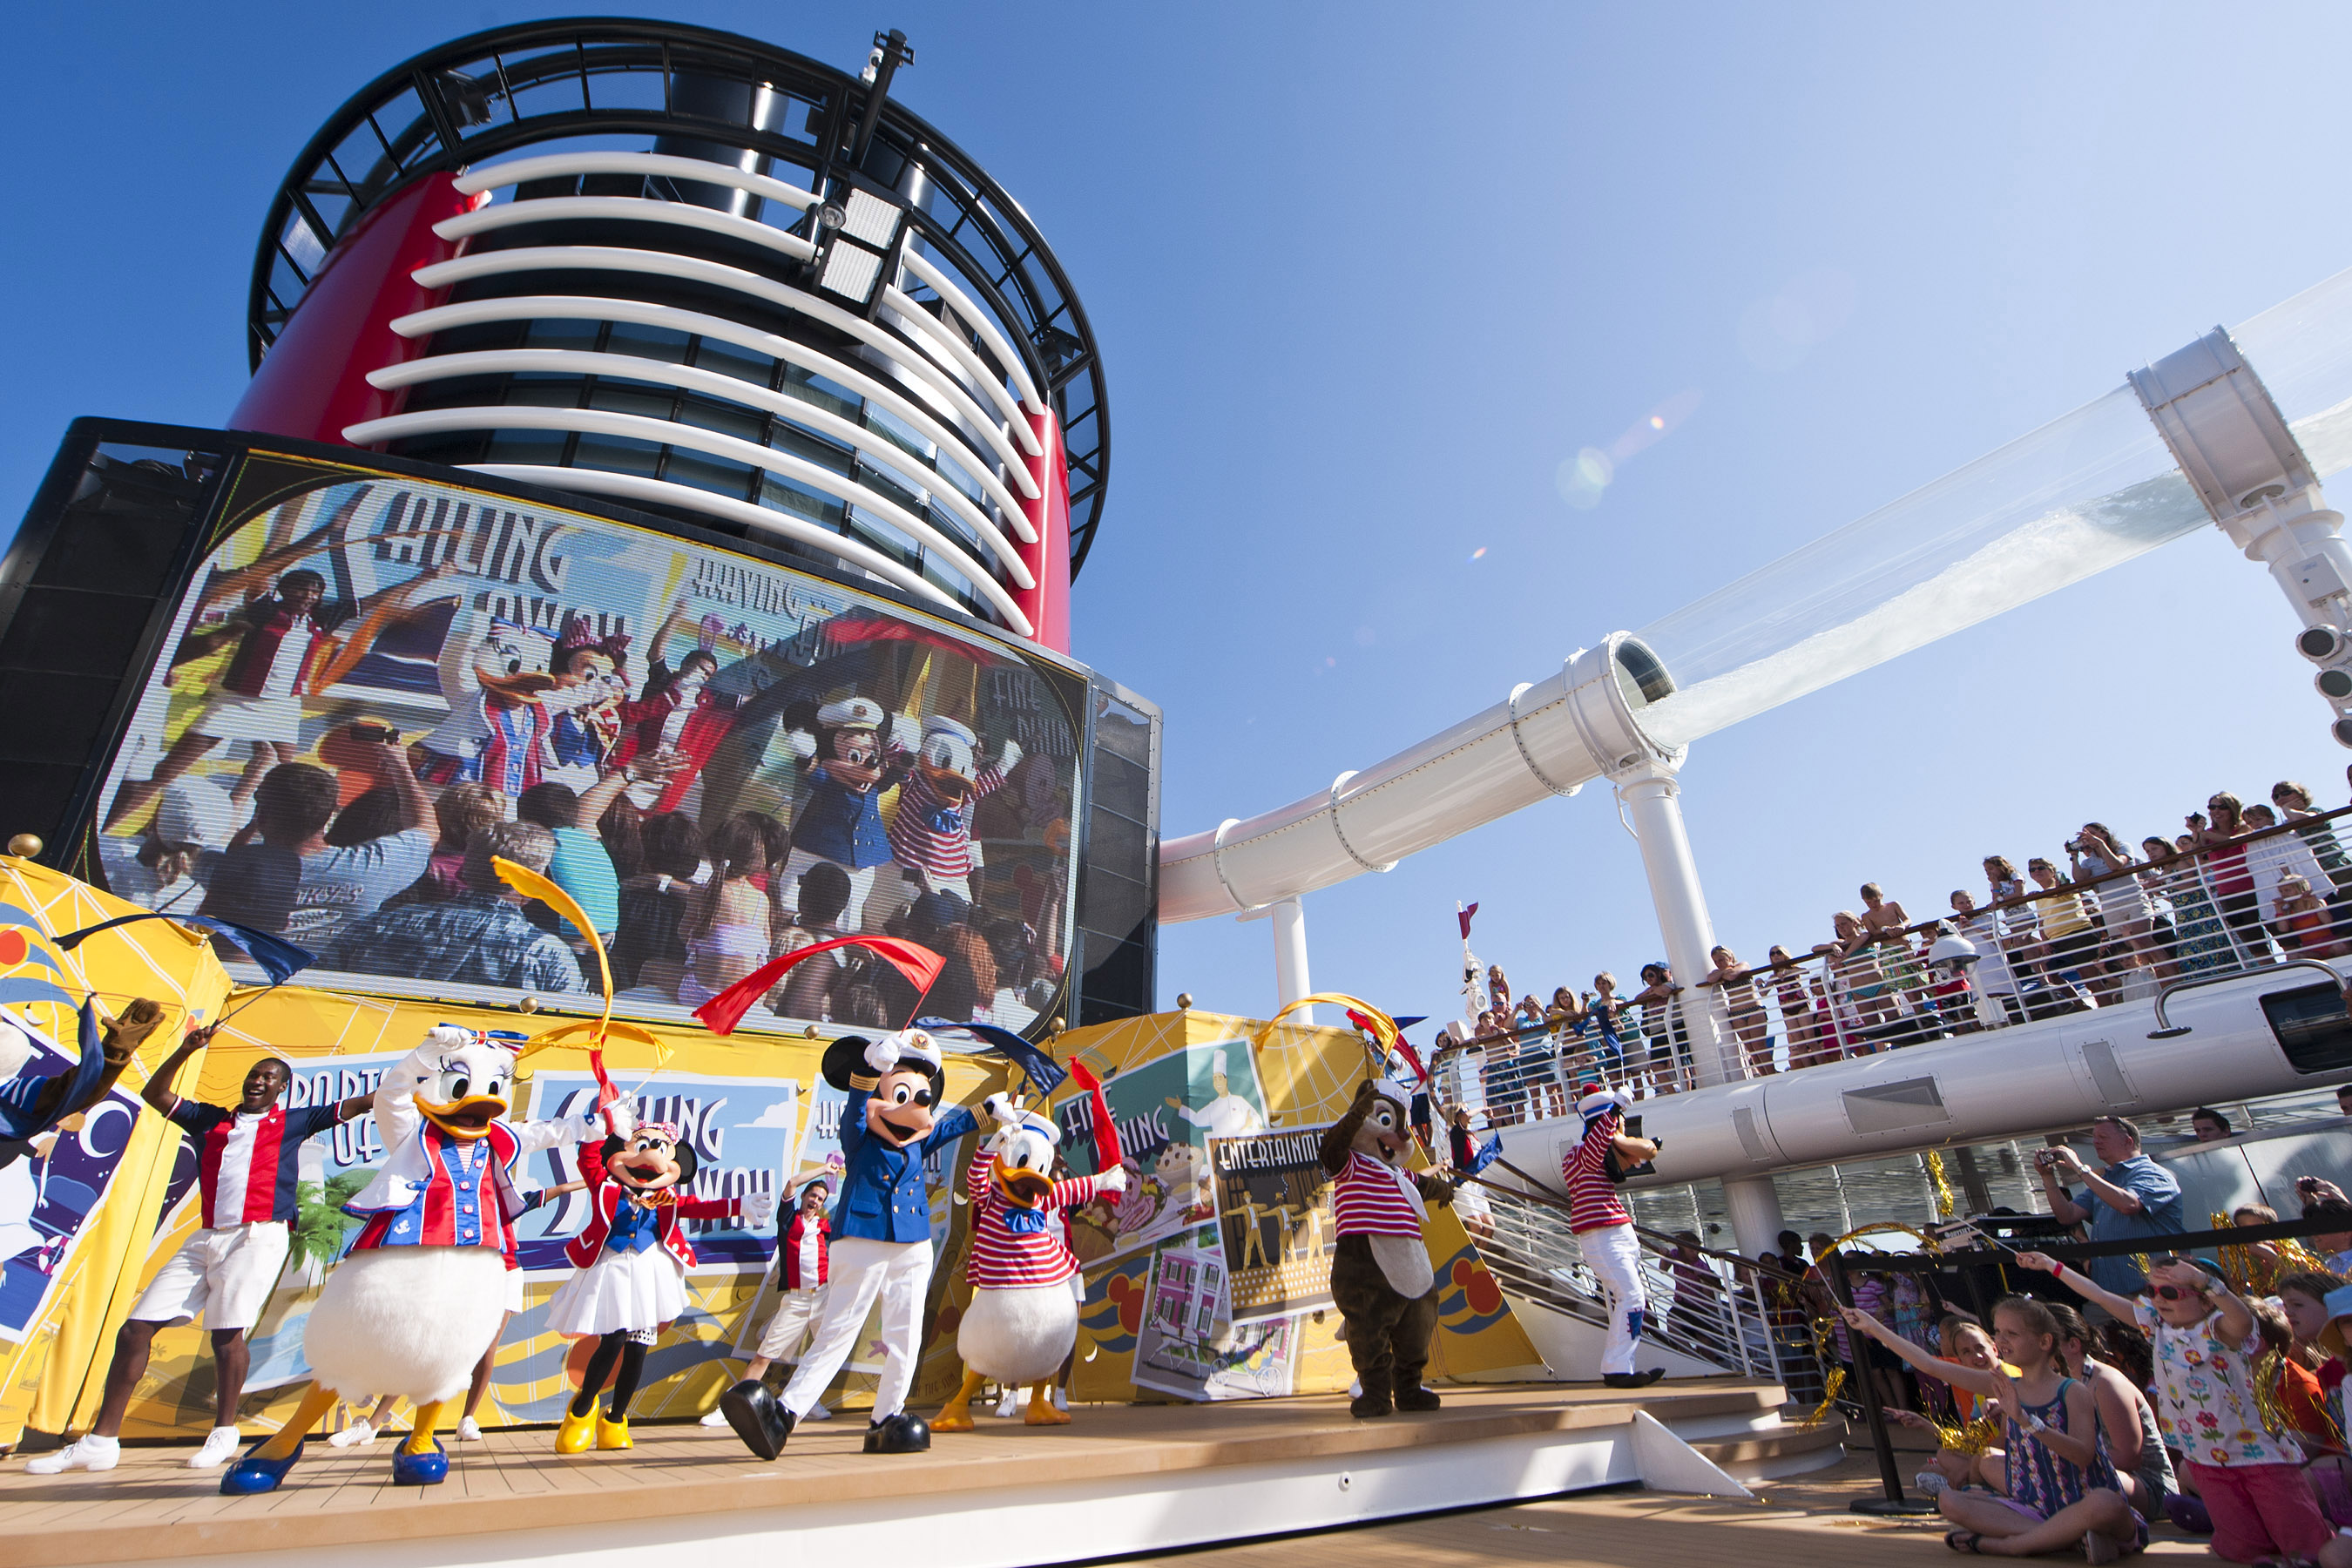 The Best Cruise Lines Of 2014